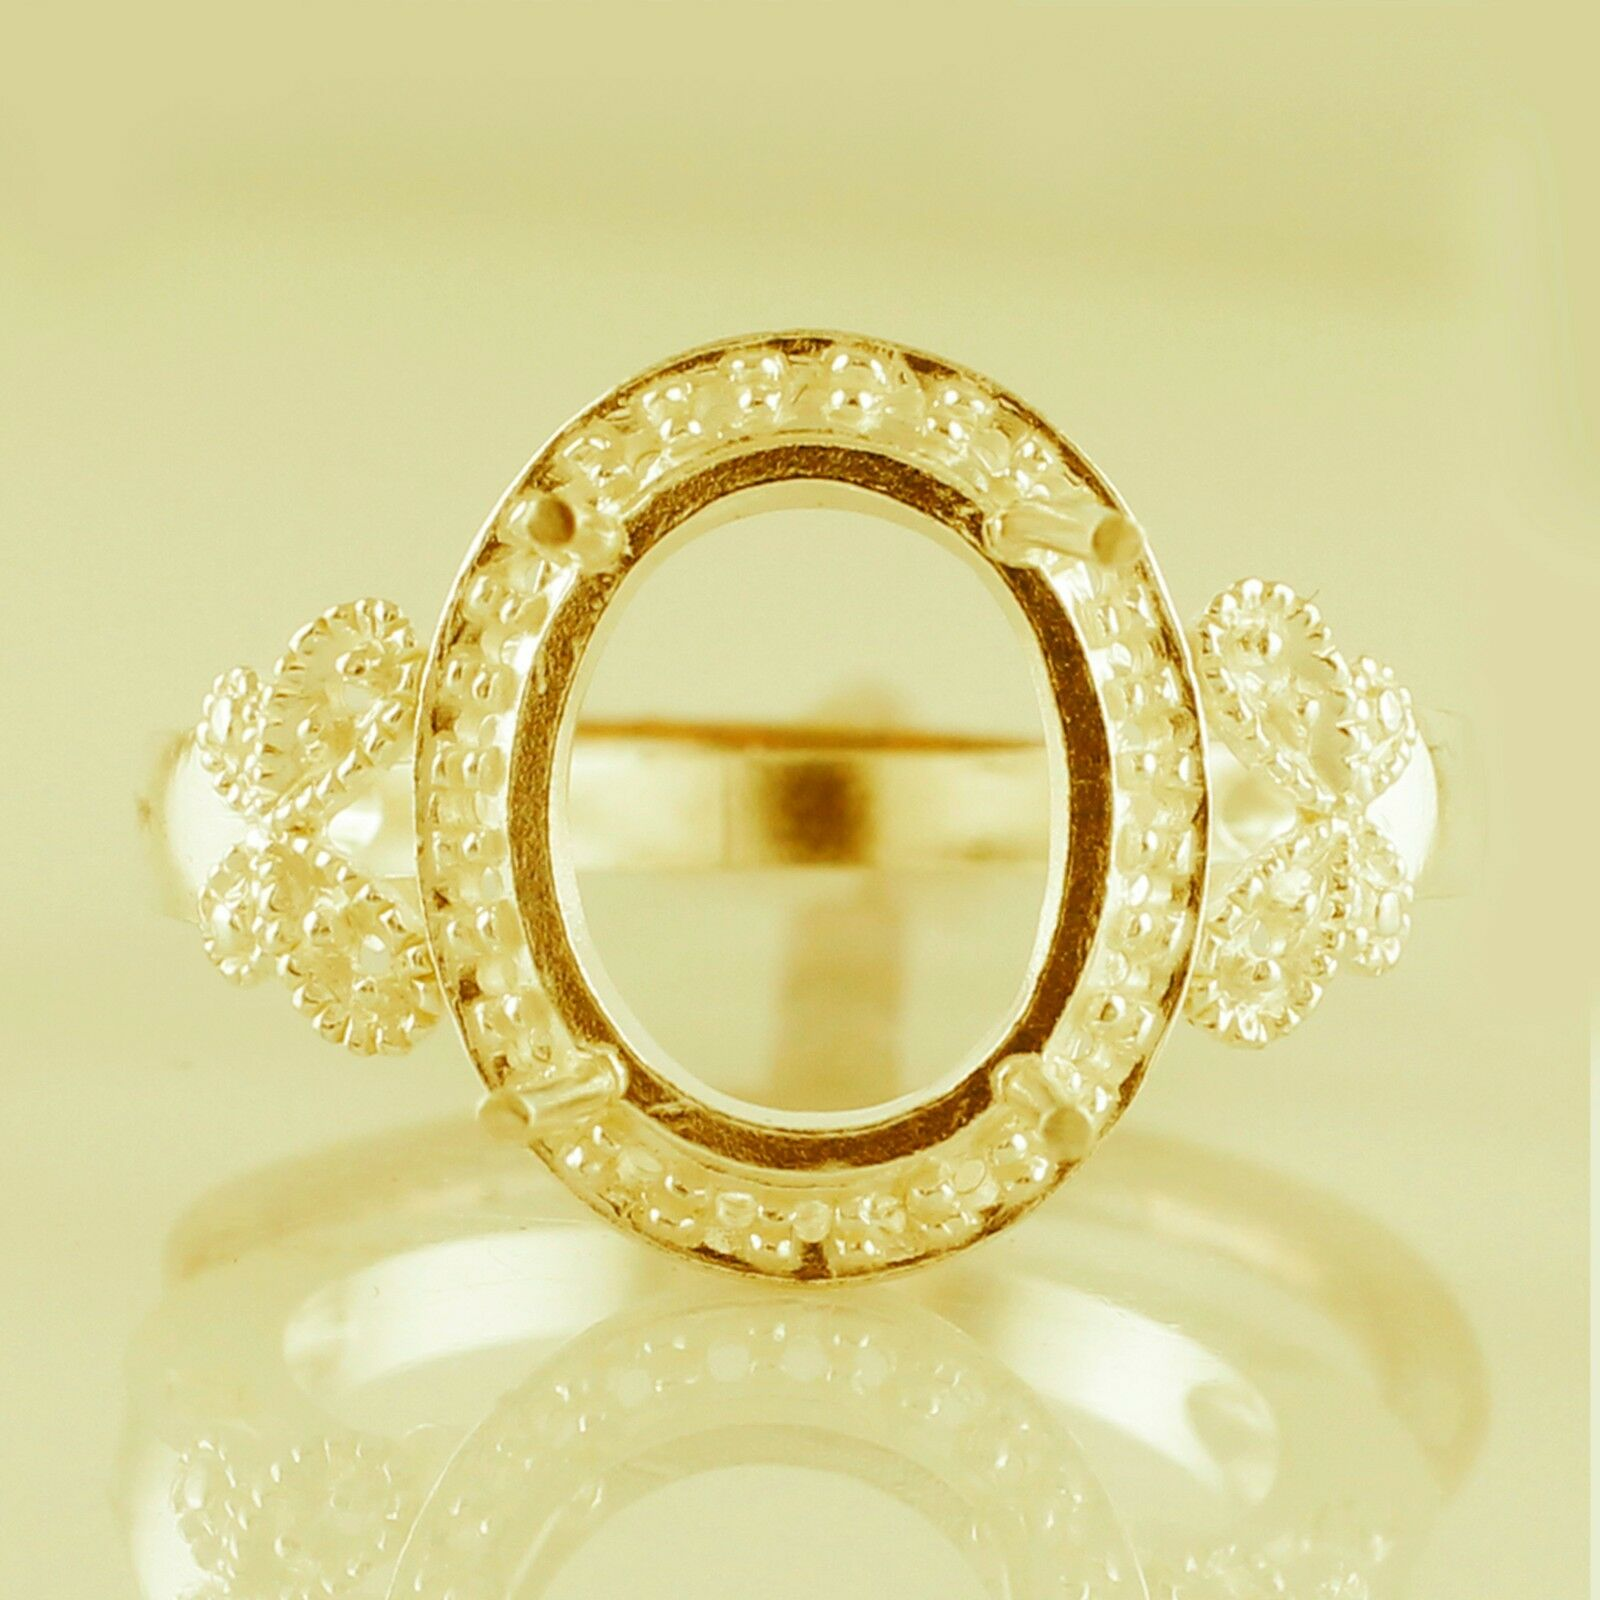 Oval Shape Ring Semi Mount 10x12 MM Natural Authentic gold Natural Top Jewelry